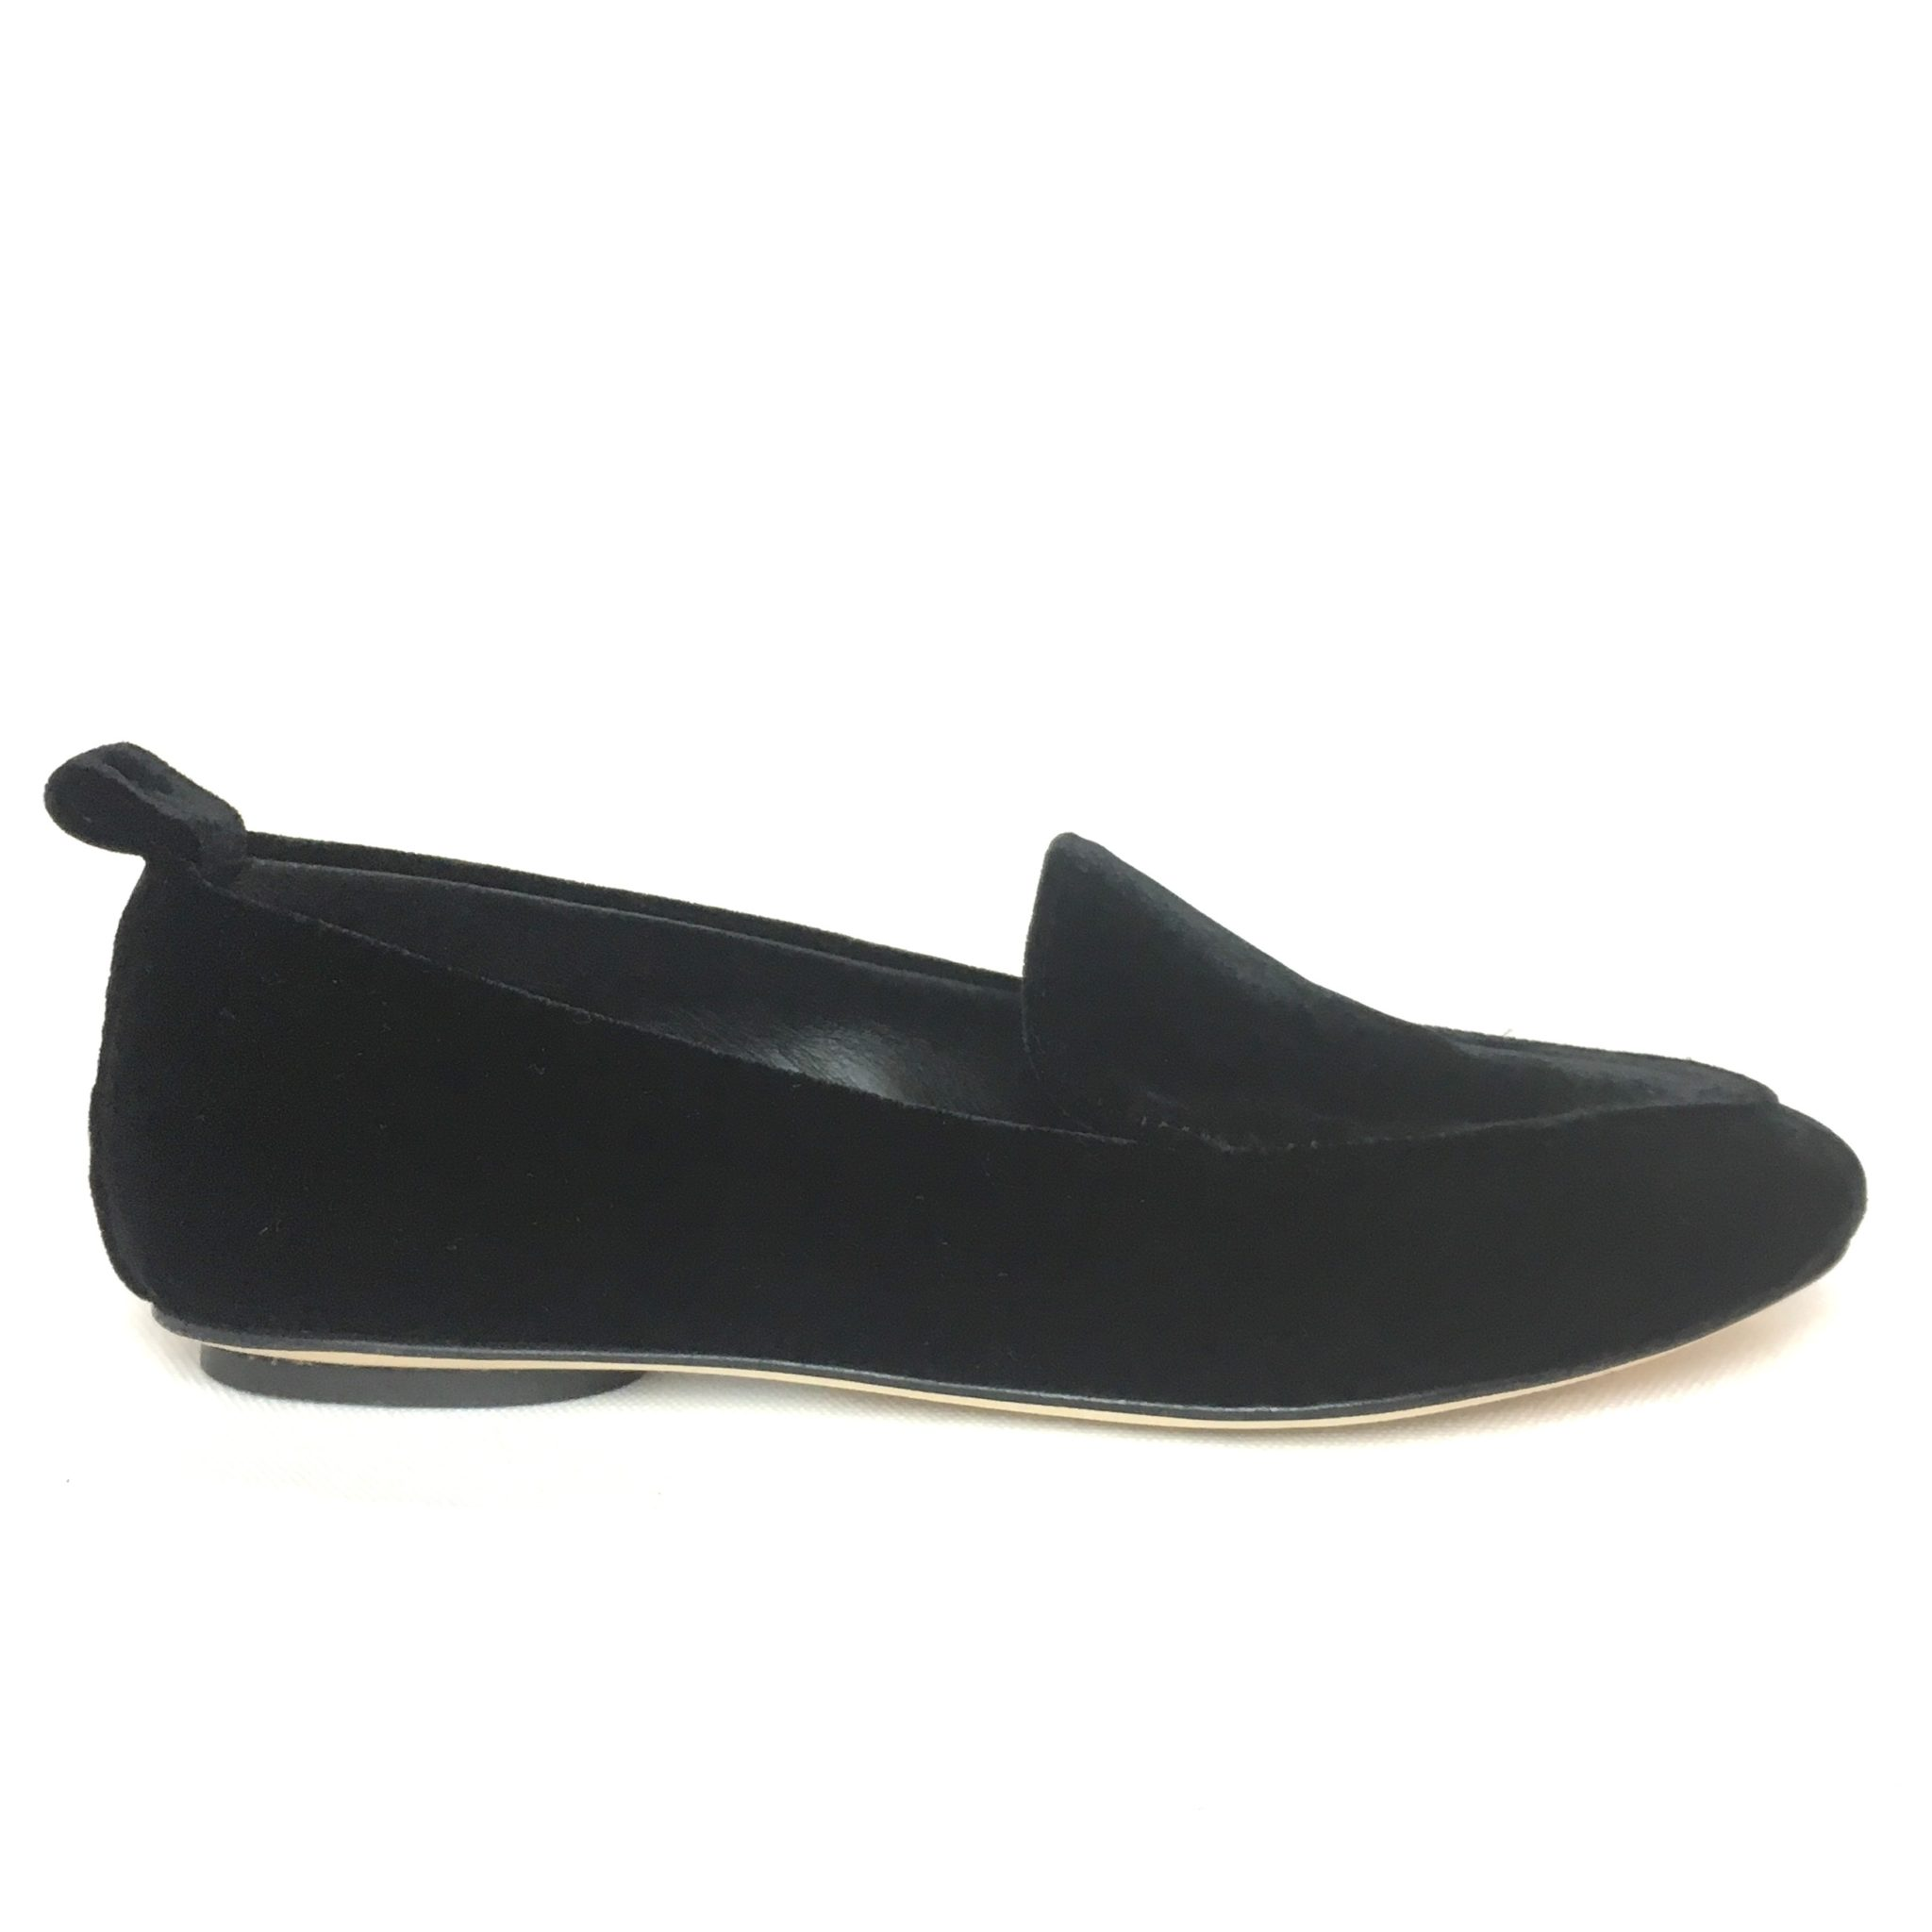 f30bfdec30790 By A. mod. 7196 loafers pantofola velluto nero – La Griffe calzature